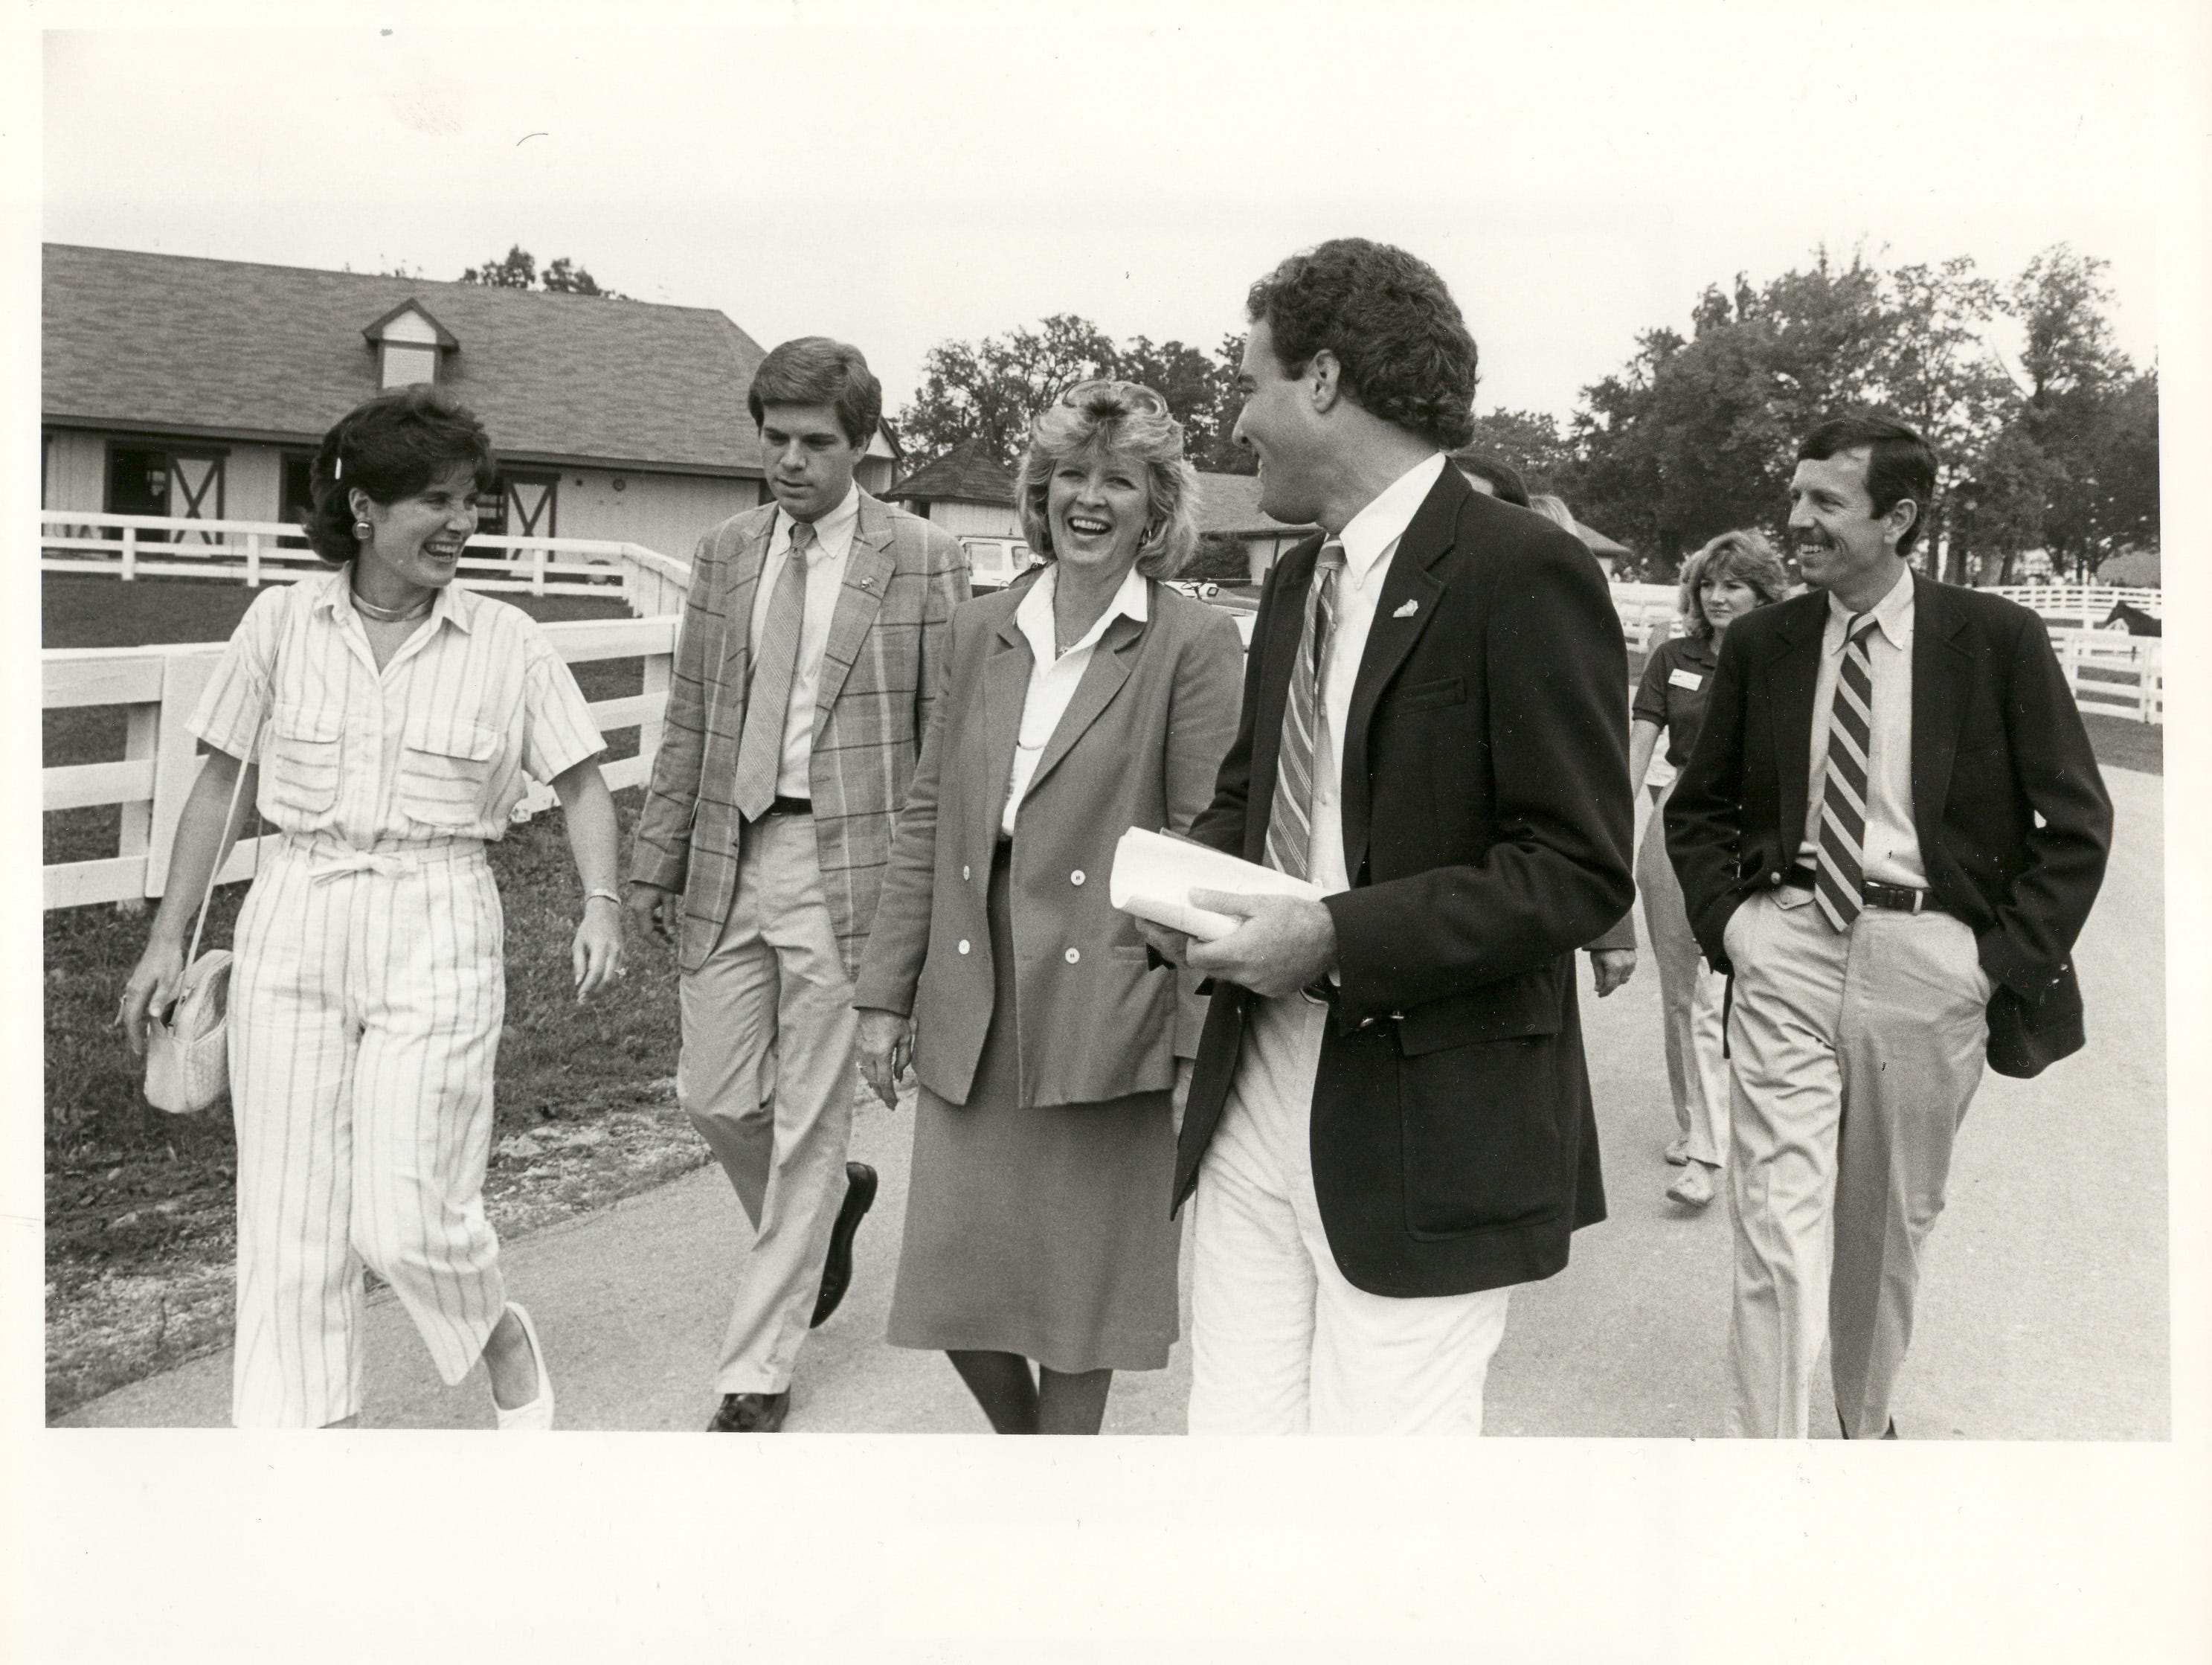 Mike Berry, second from left, seen with former Gov. Martha Layne Collins. Berry was Collins' administrative assistant and she she appointed him to the Kentucky Derby Festival Board when he was just 23 years old.